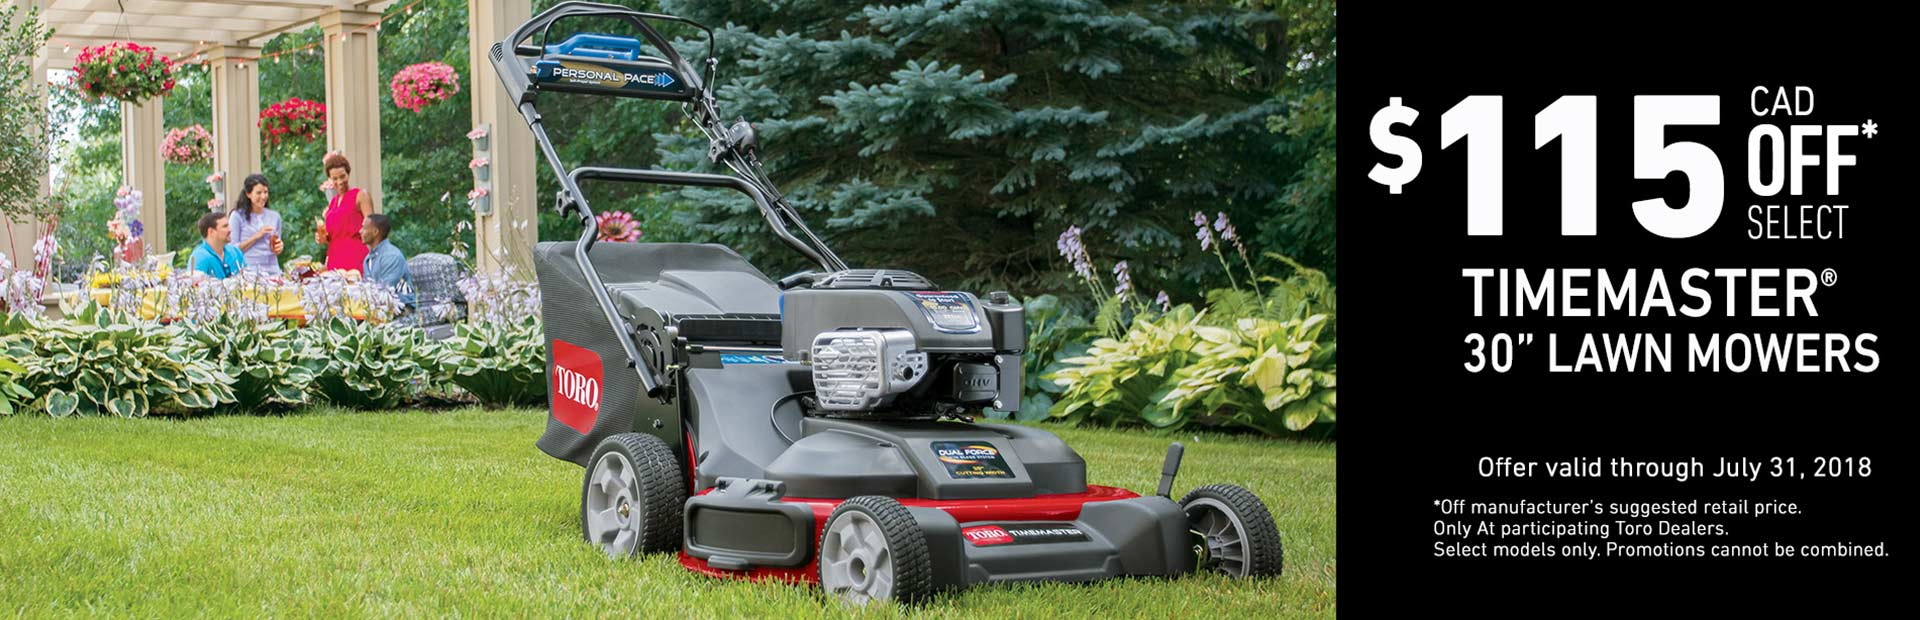 Toro: $115 CAD OFF Select Off Select TimeMaster Mowers